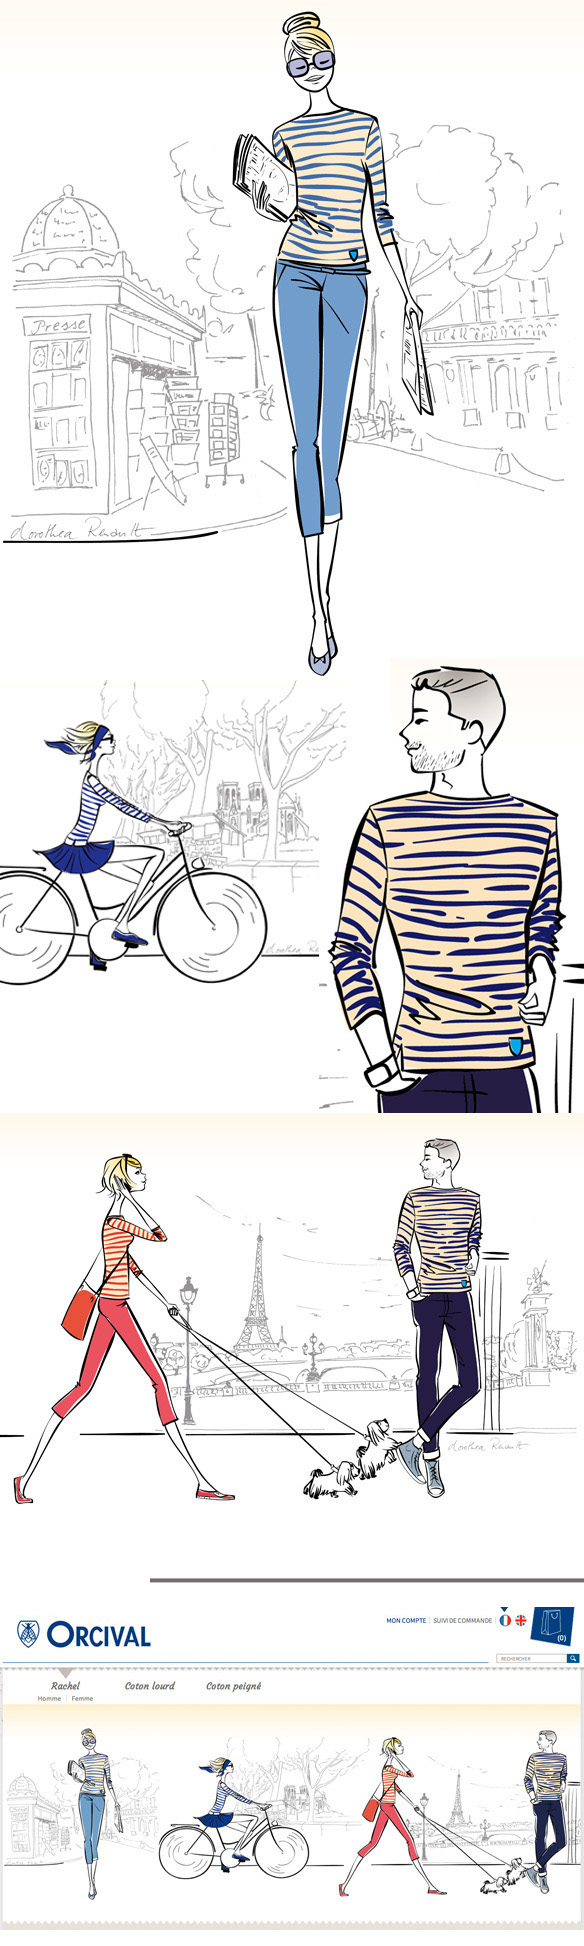 illustrations marinieres Orcival homepage